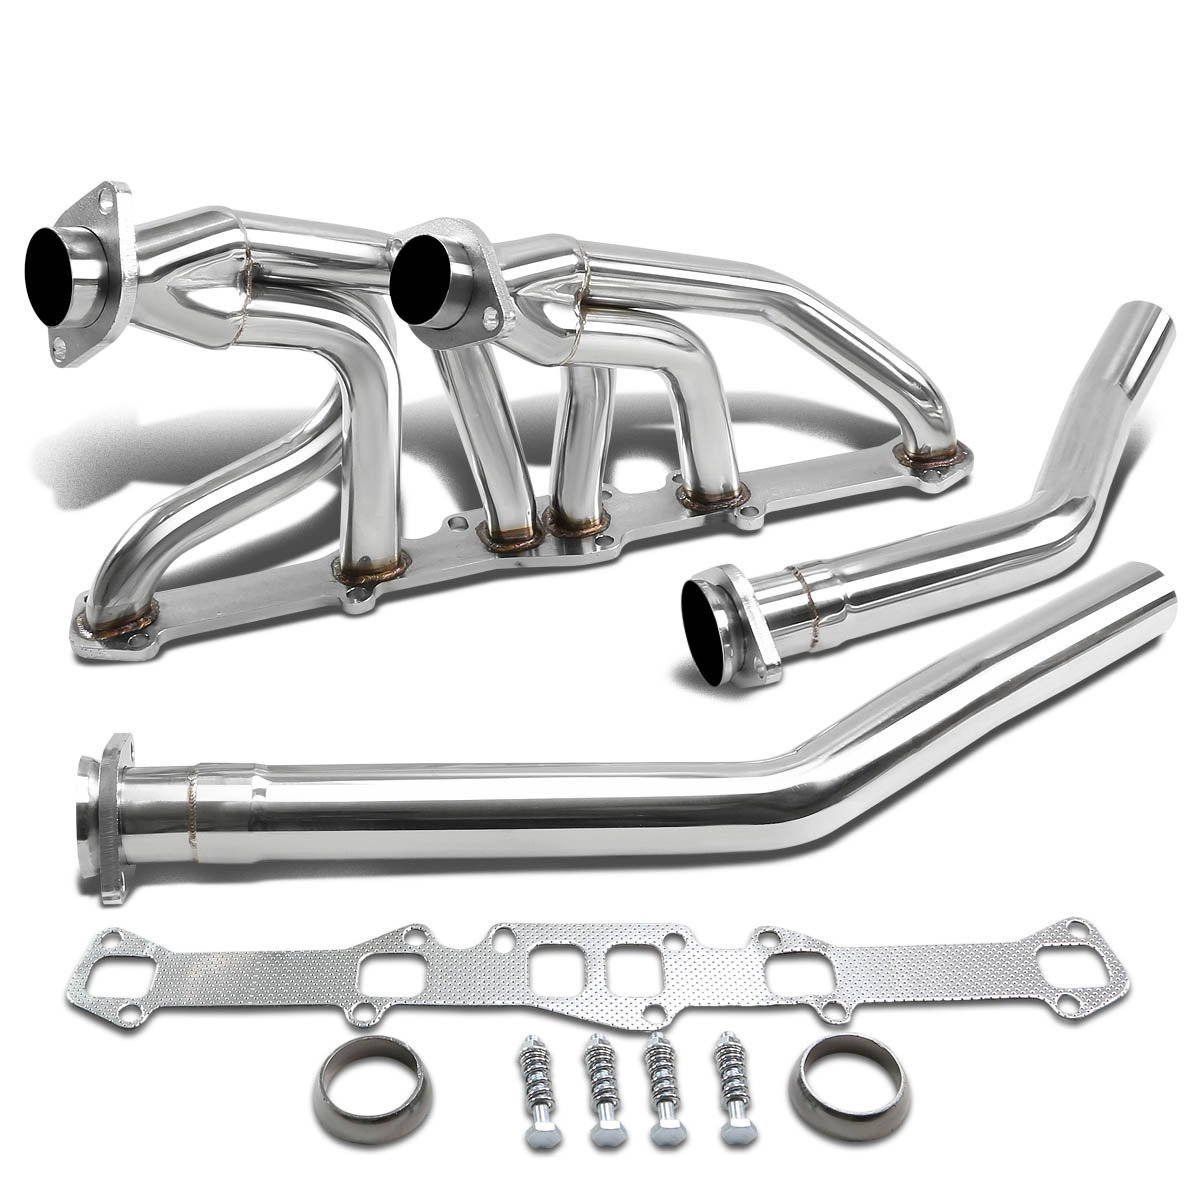 60-83 Ford/Mercury I6 6-2 Design Stainless Steel Exhaust Header Kit